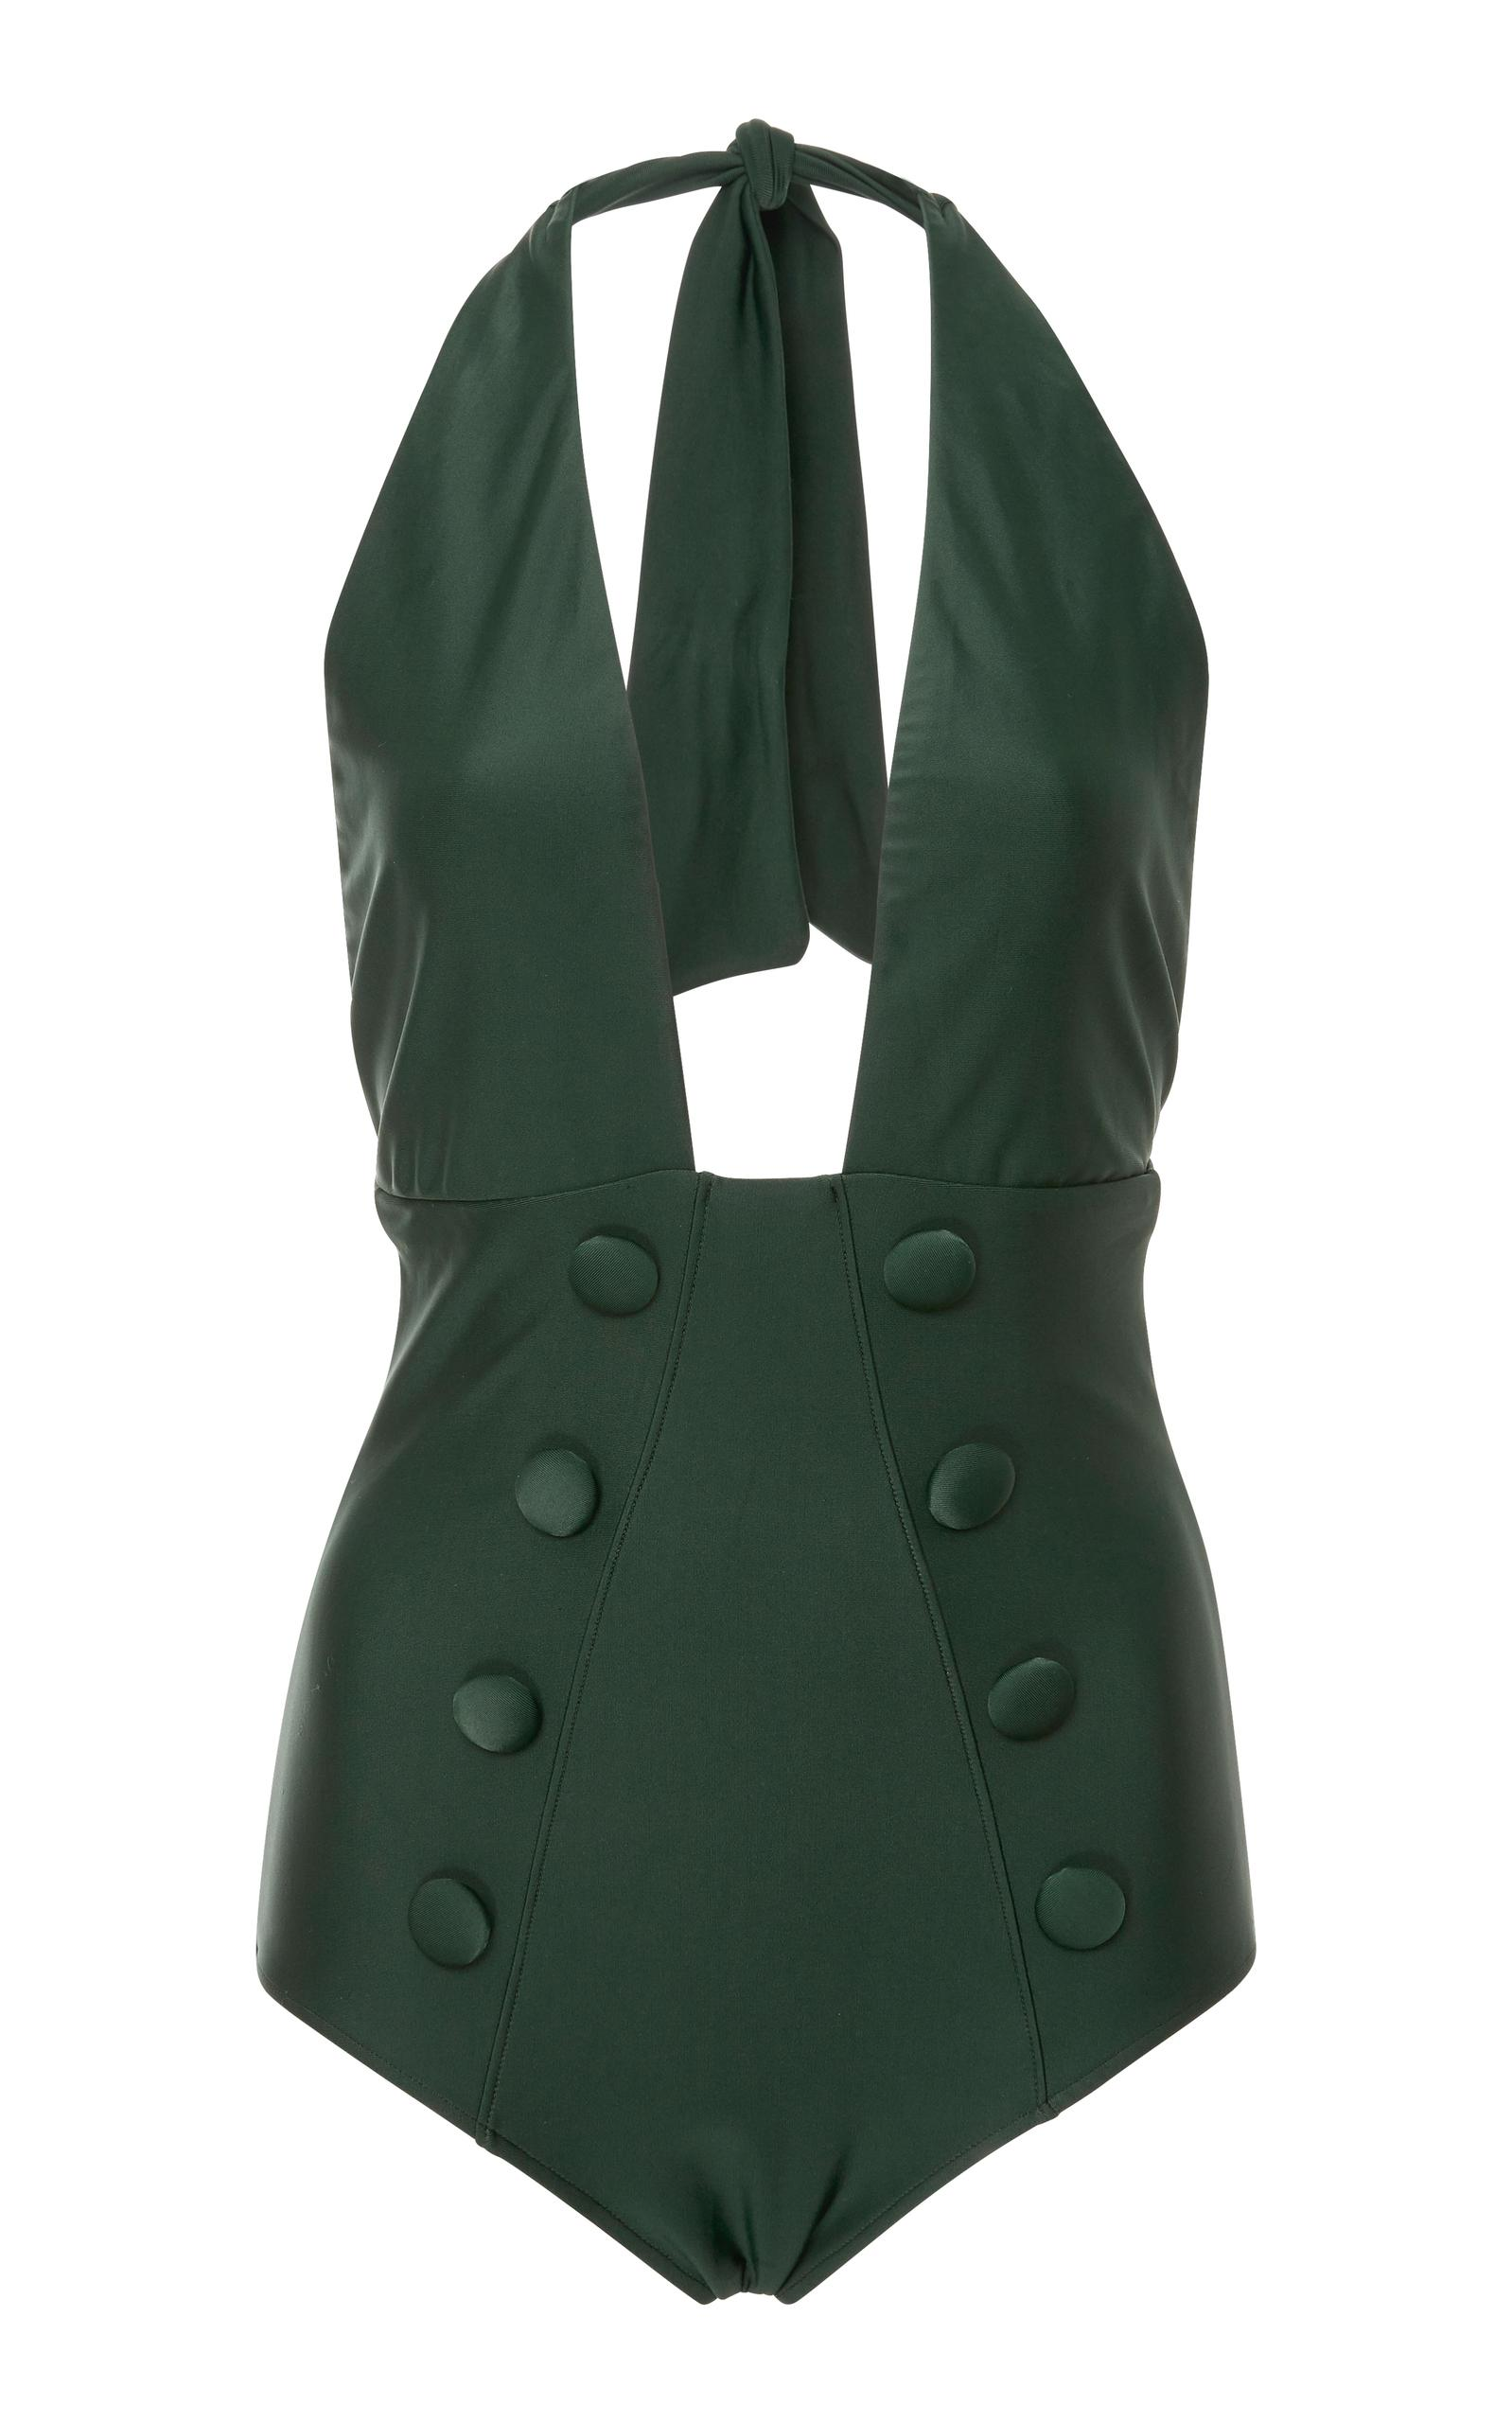 Adriana Degreas Cavalagde Plunge One-Piece Swimsuit In Green